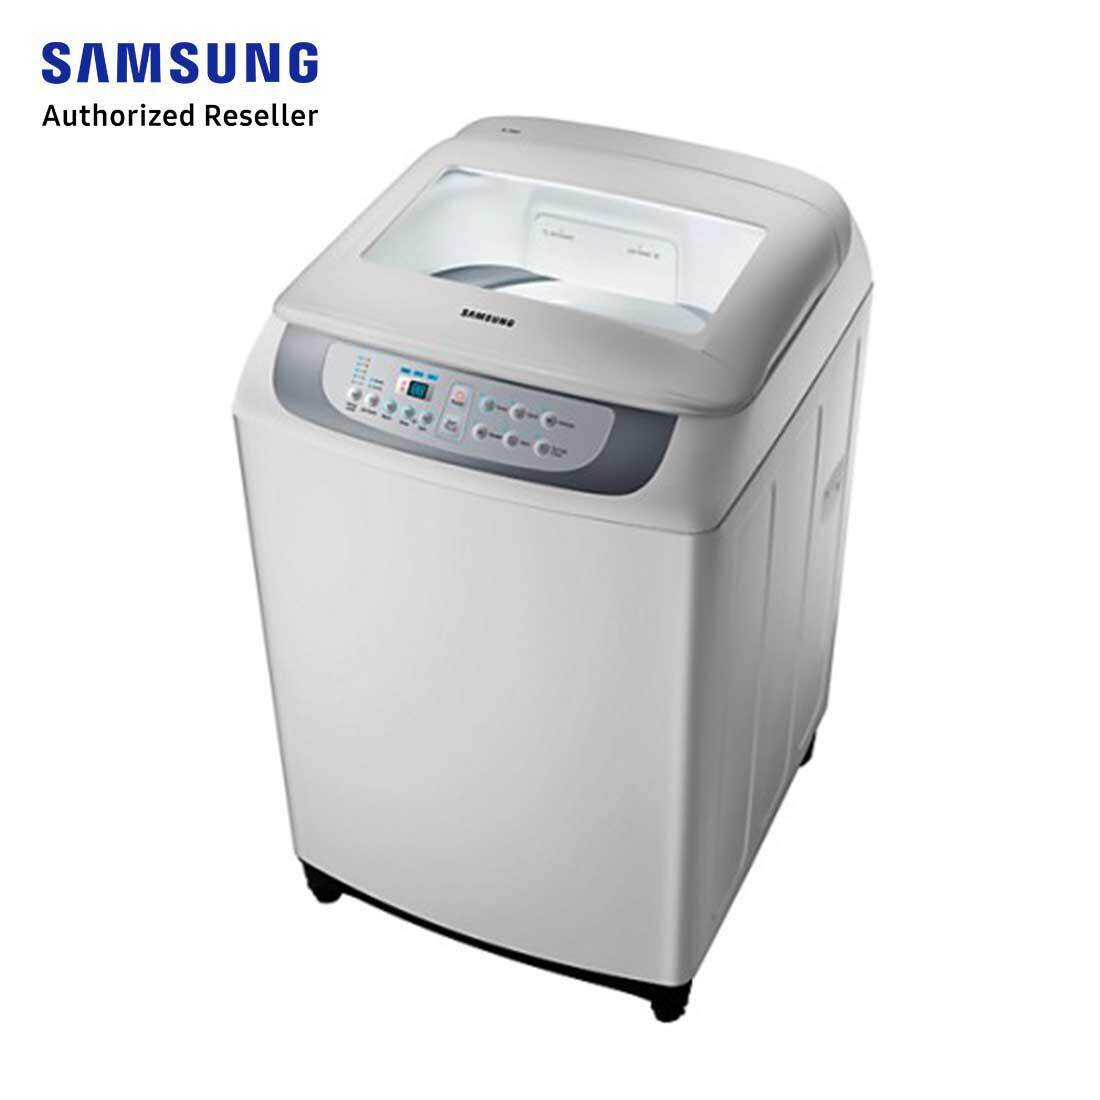 SAMSUNG FULLY AUTOMATED TOP LOAD WASHING MACHINE 13KG WA13F5S3QRY/FQ